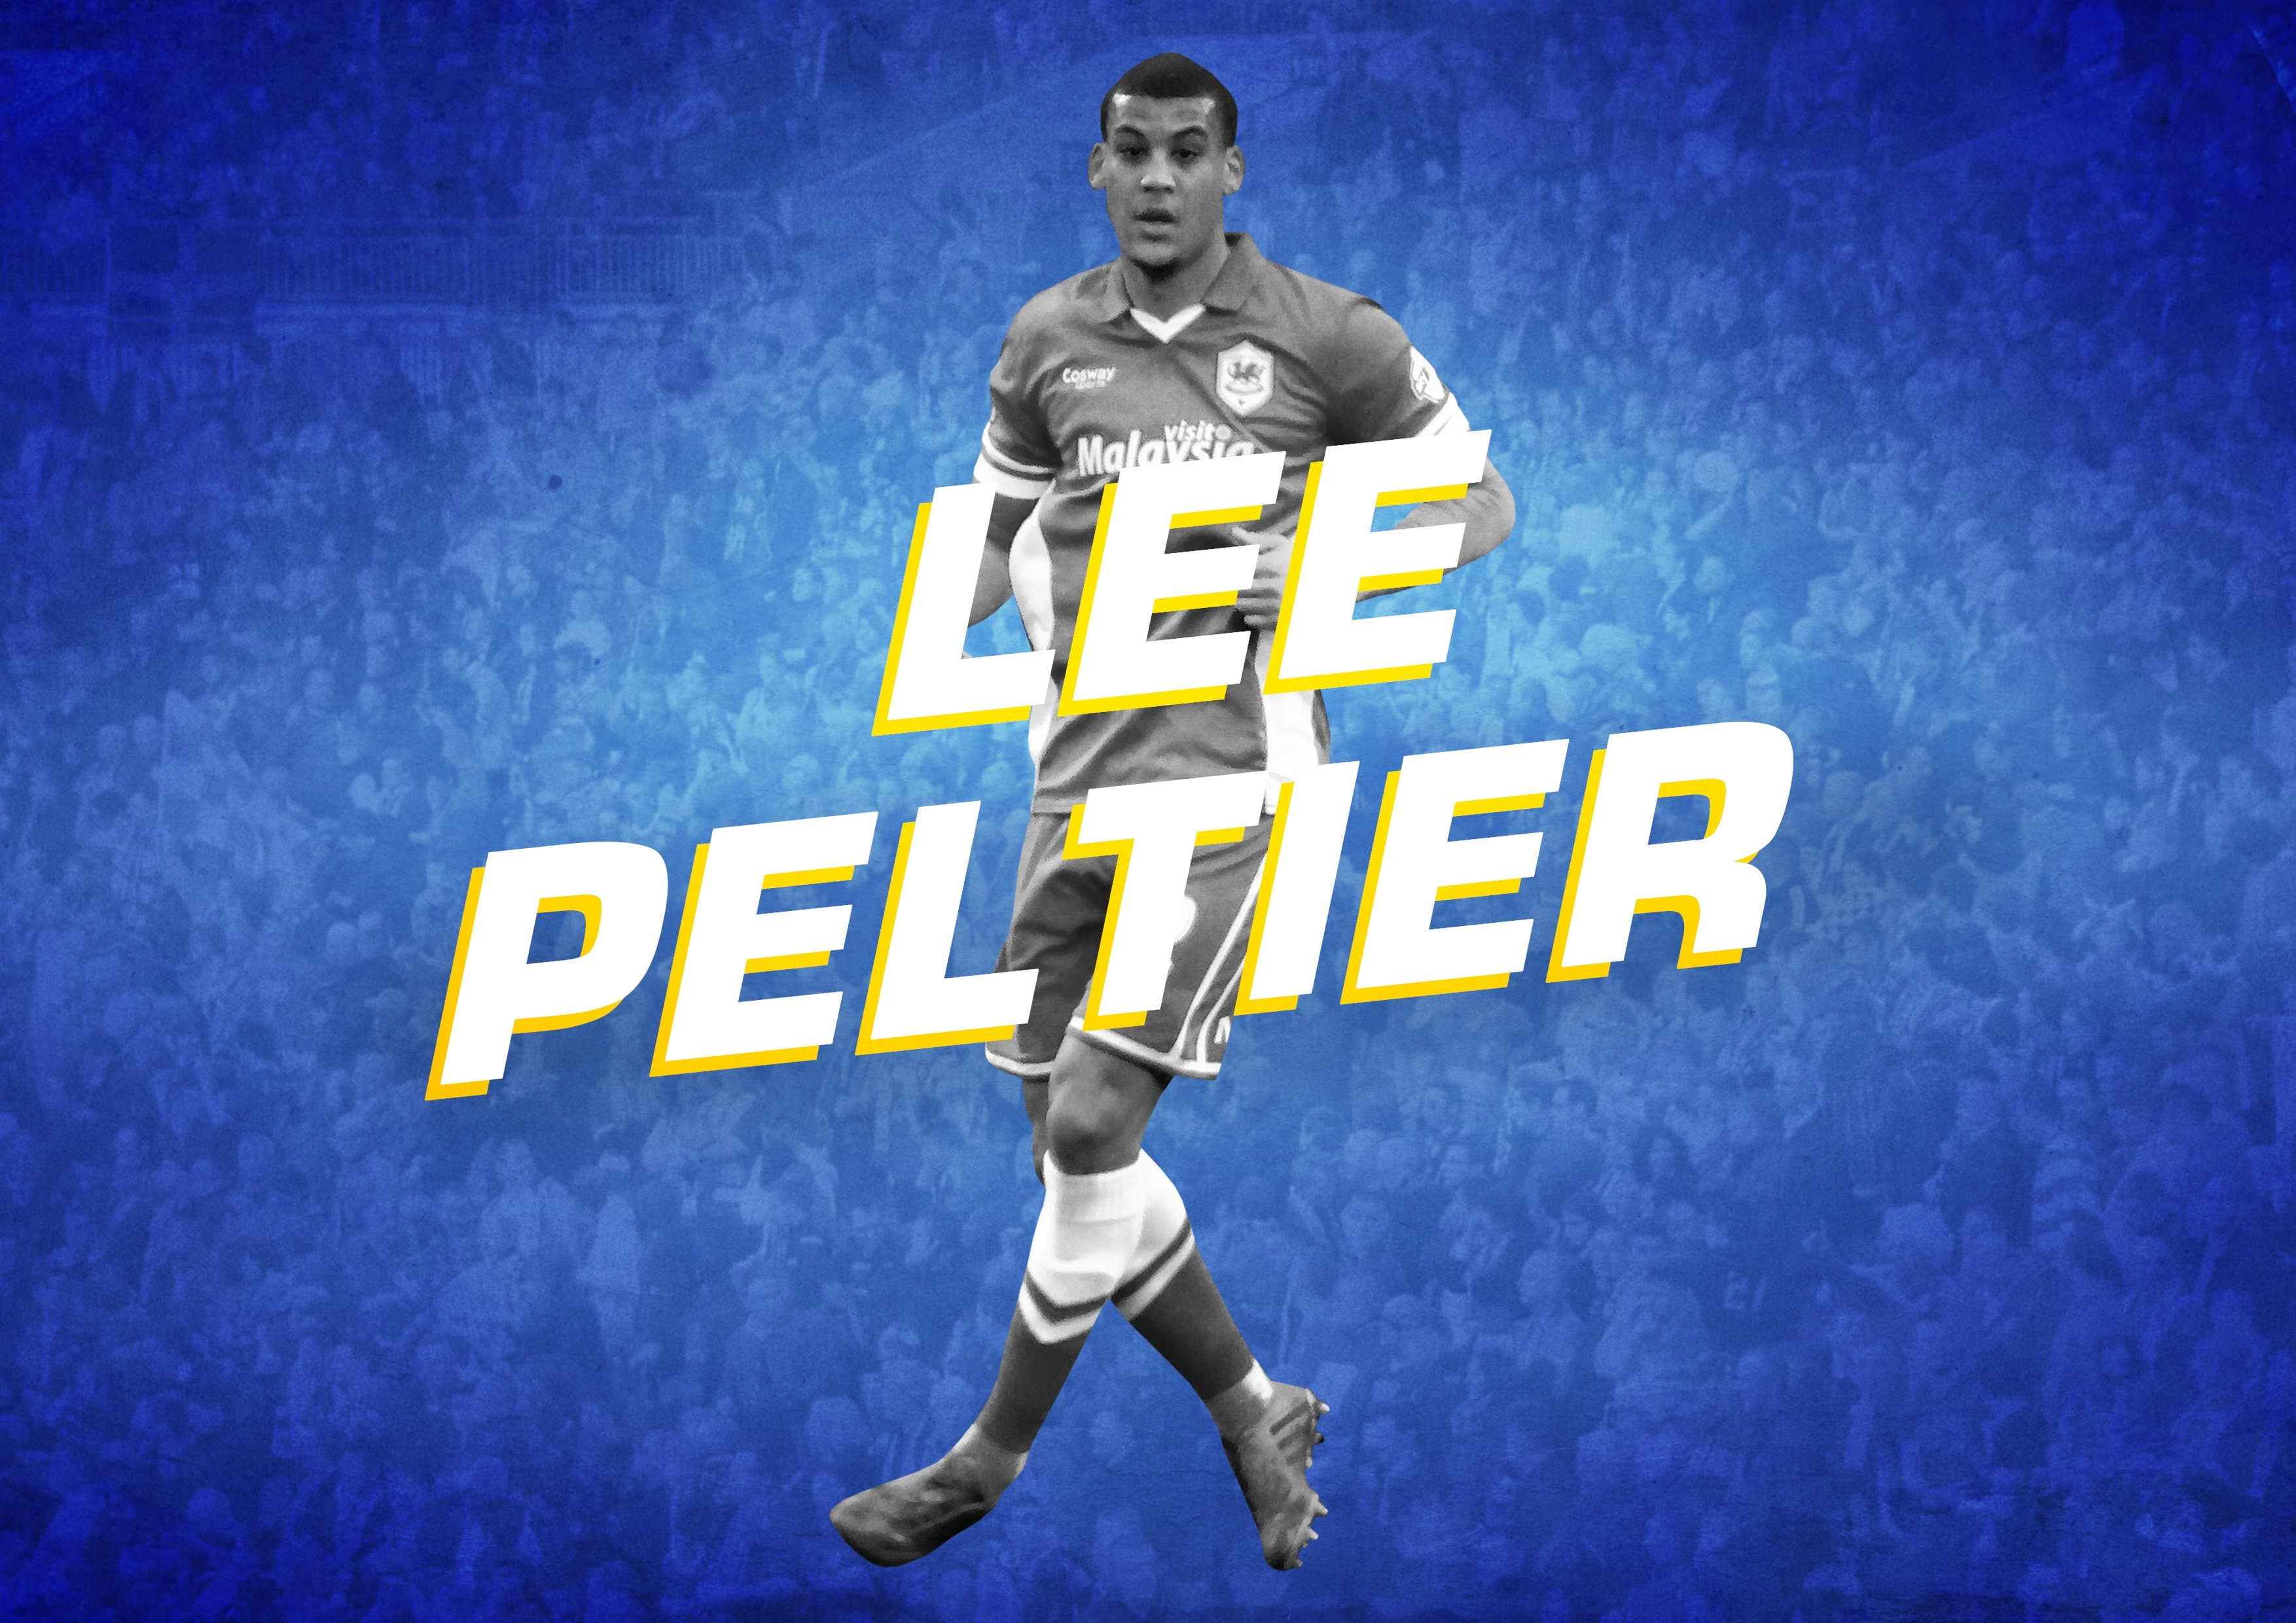 Lee Peltier - Cardiff City